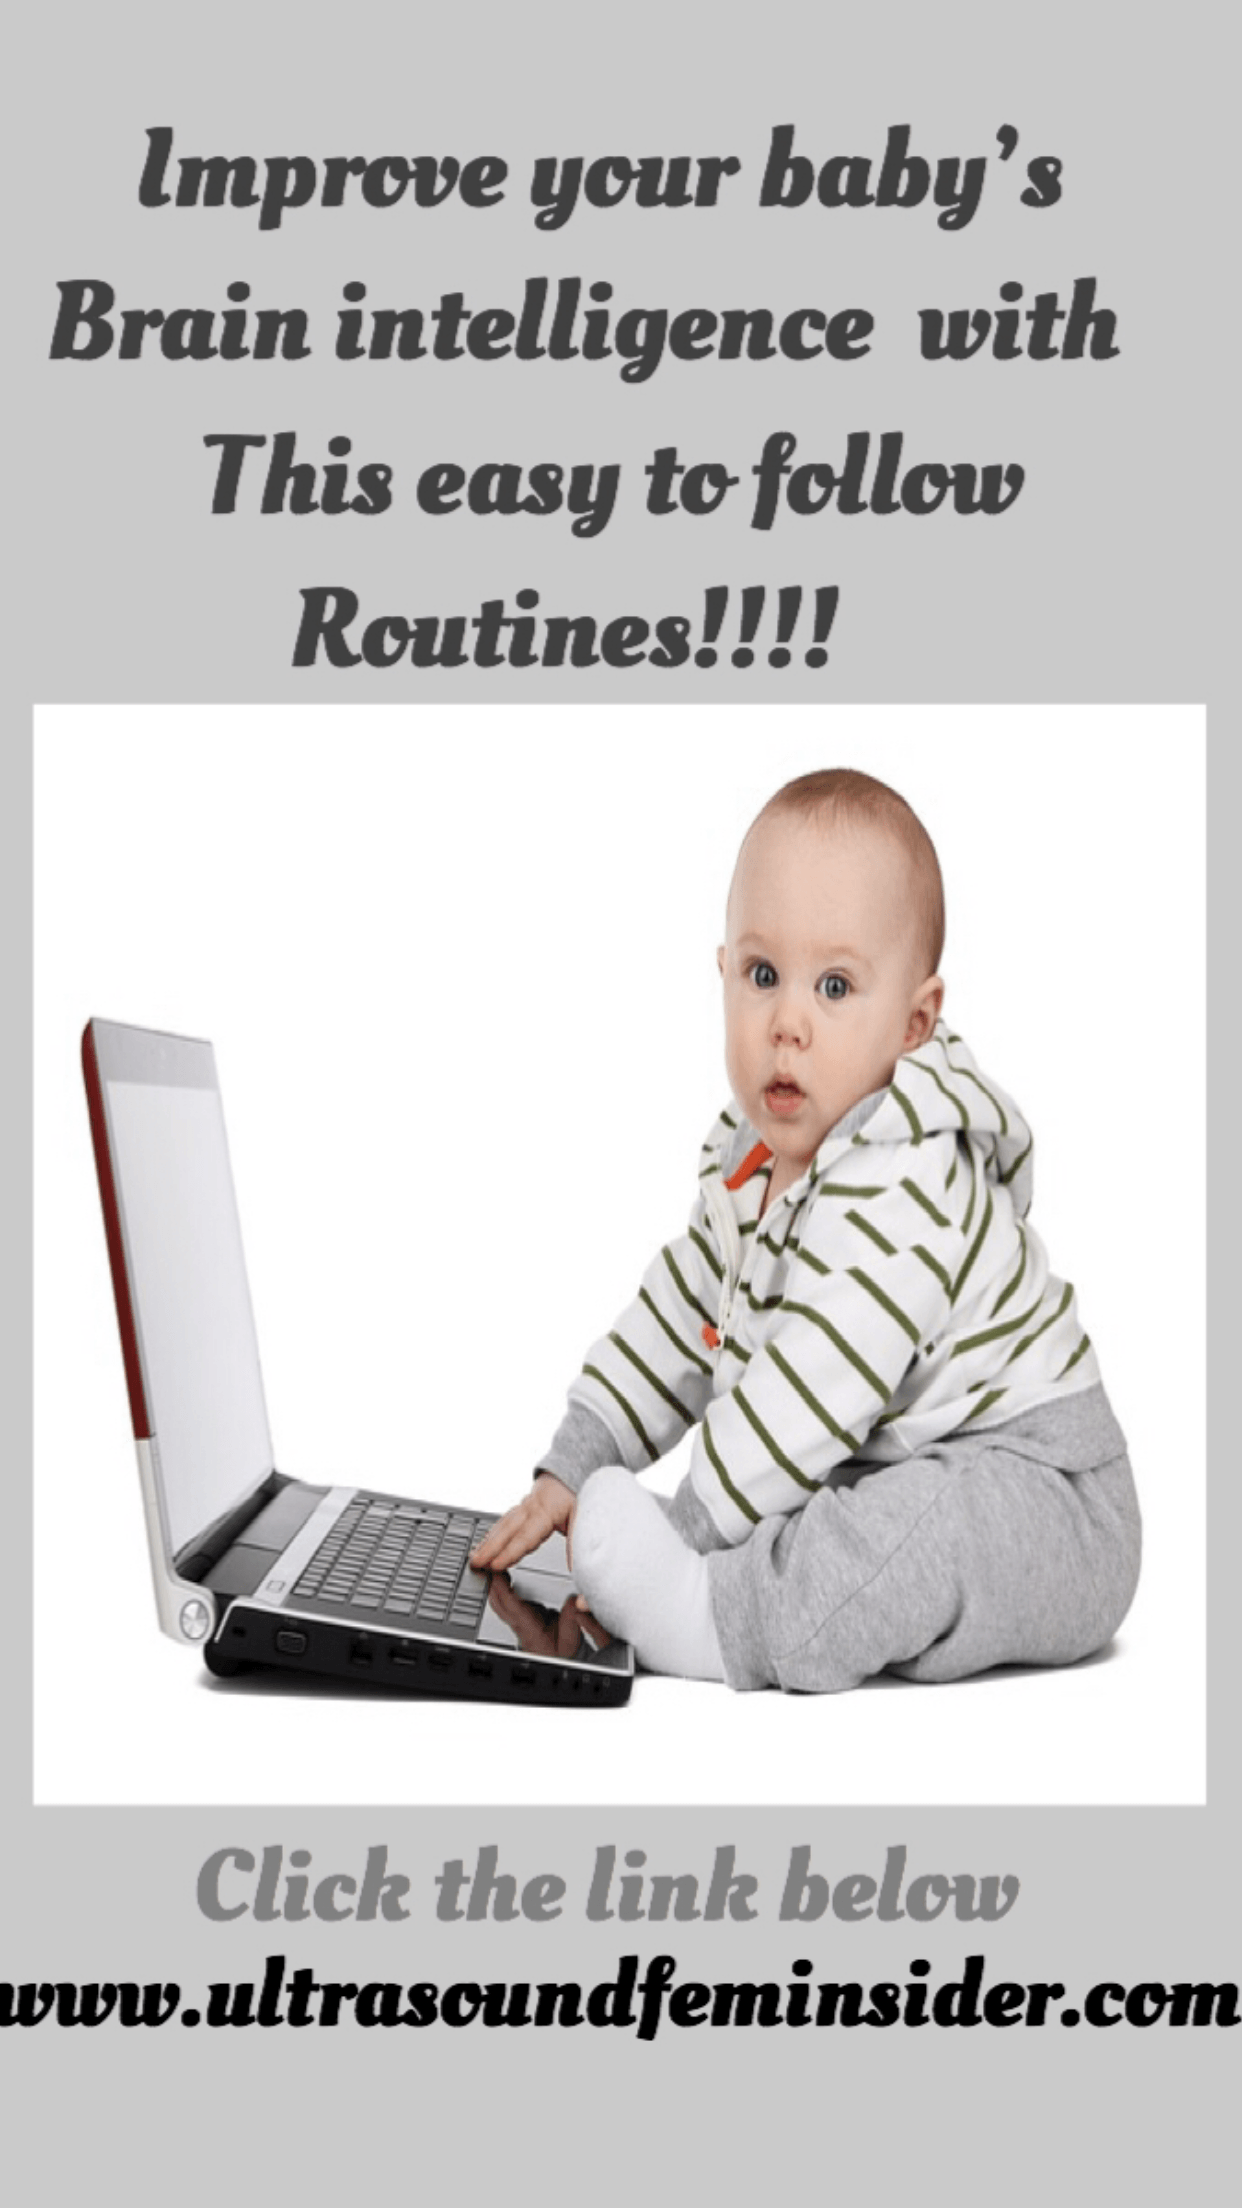 Daily routines to improve and develop your baby's intelligence